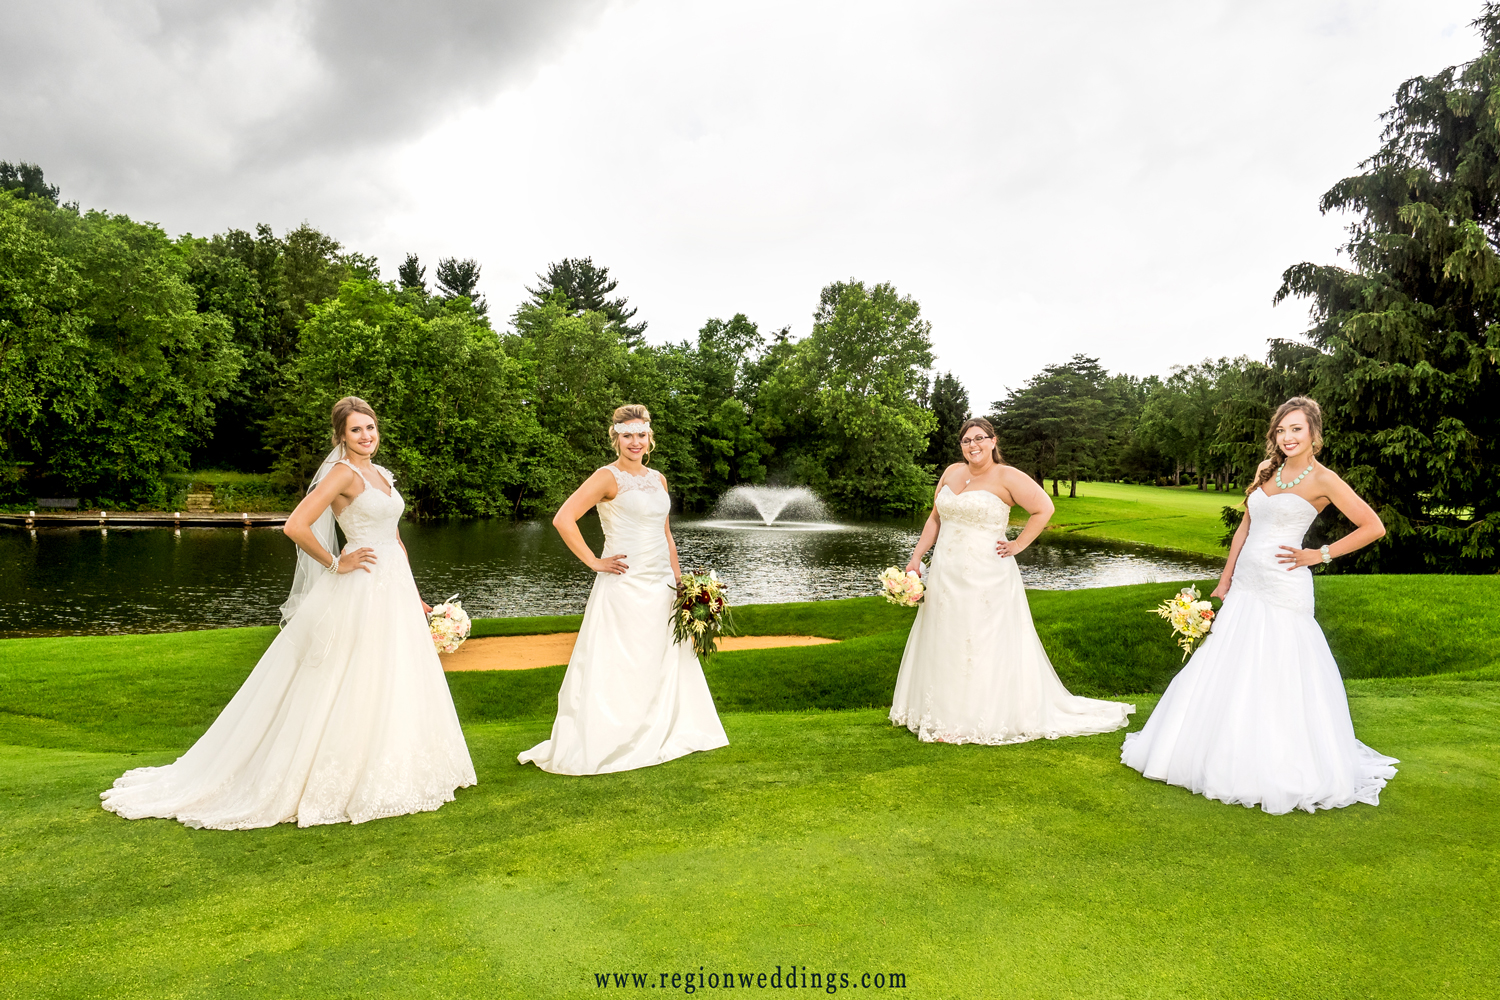 Four brides on the Sandy Pines Golf Course with the lake and fountain behind them.